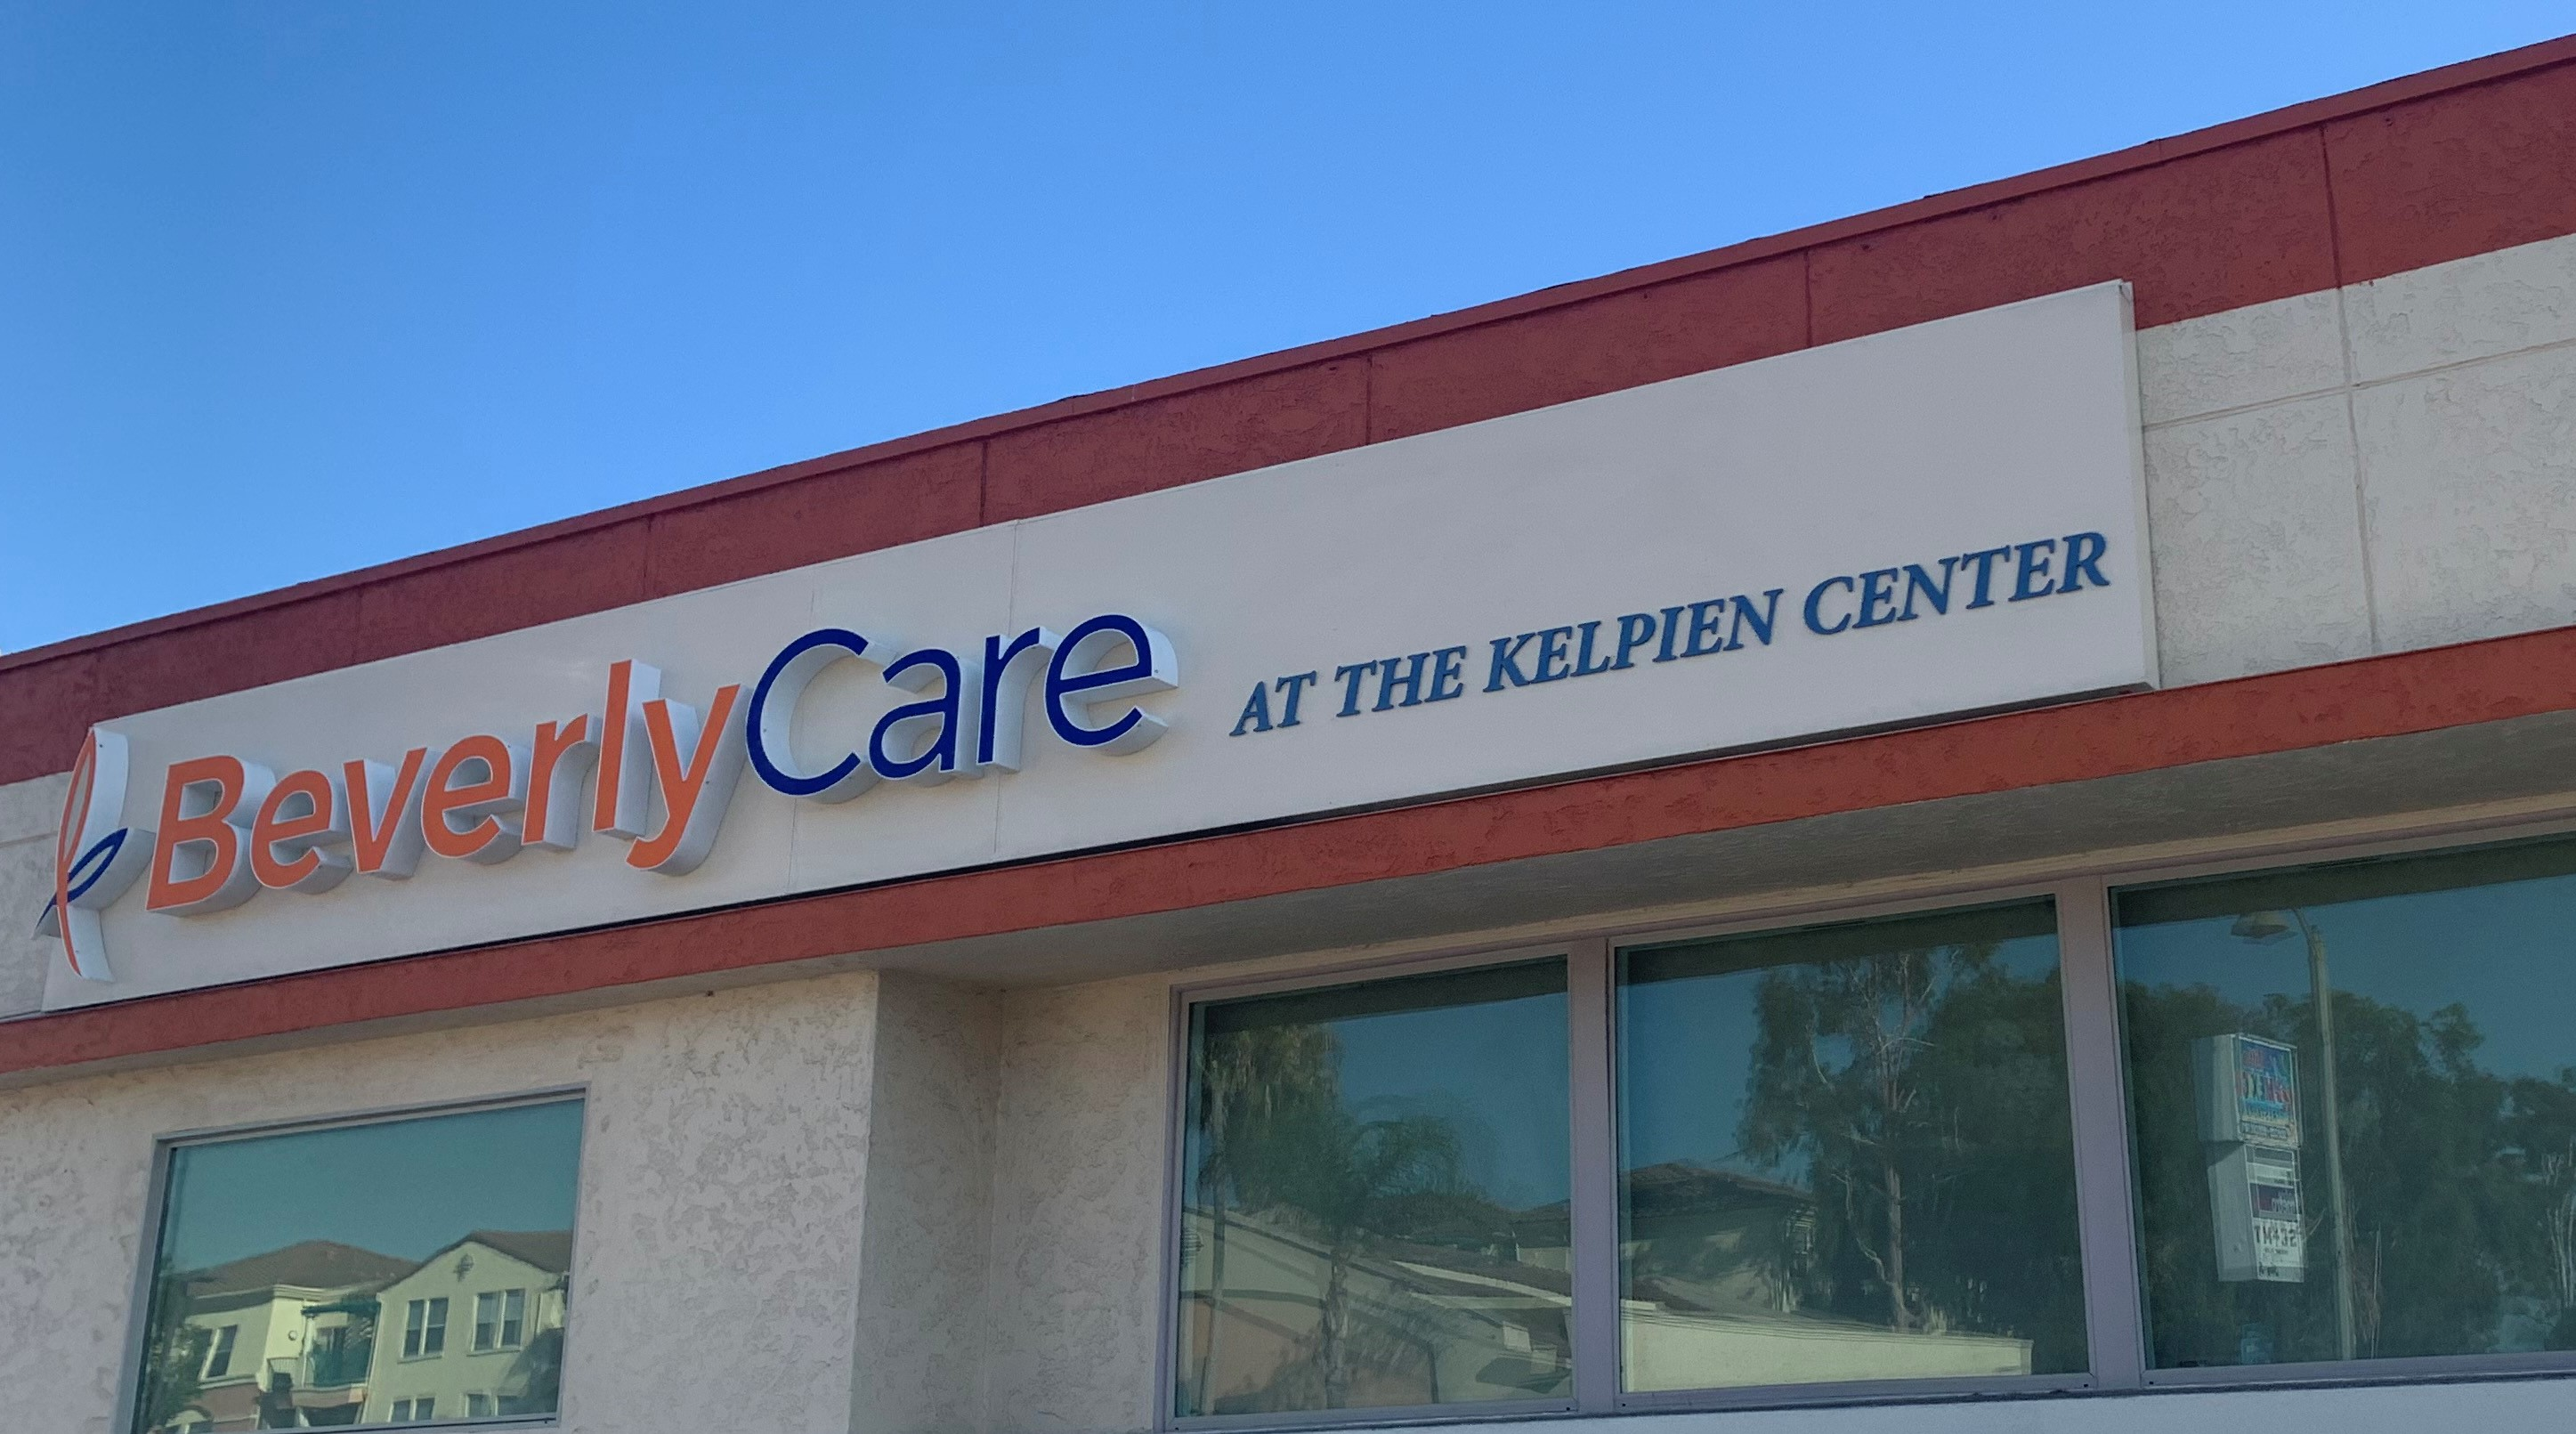 These are the front lit channel letters with acrylic lettering we fabricated and installed for BeverlyCare at the Kelpein Center in Montebello.